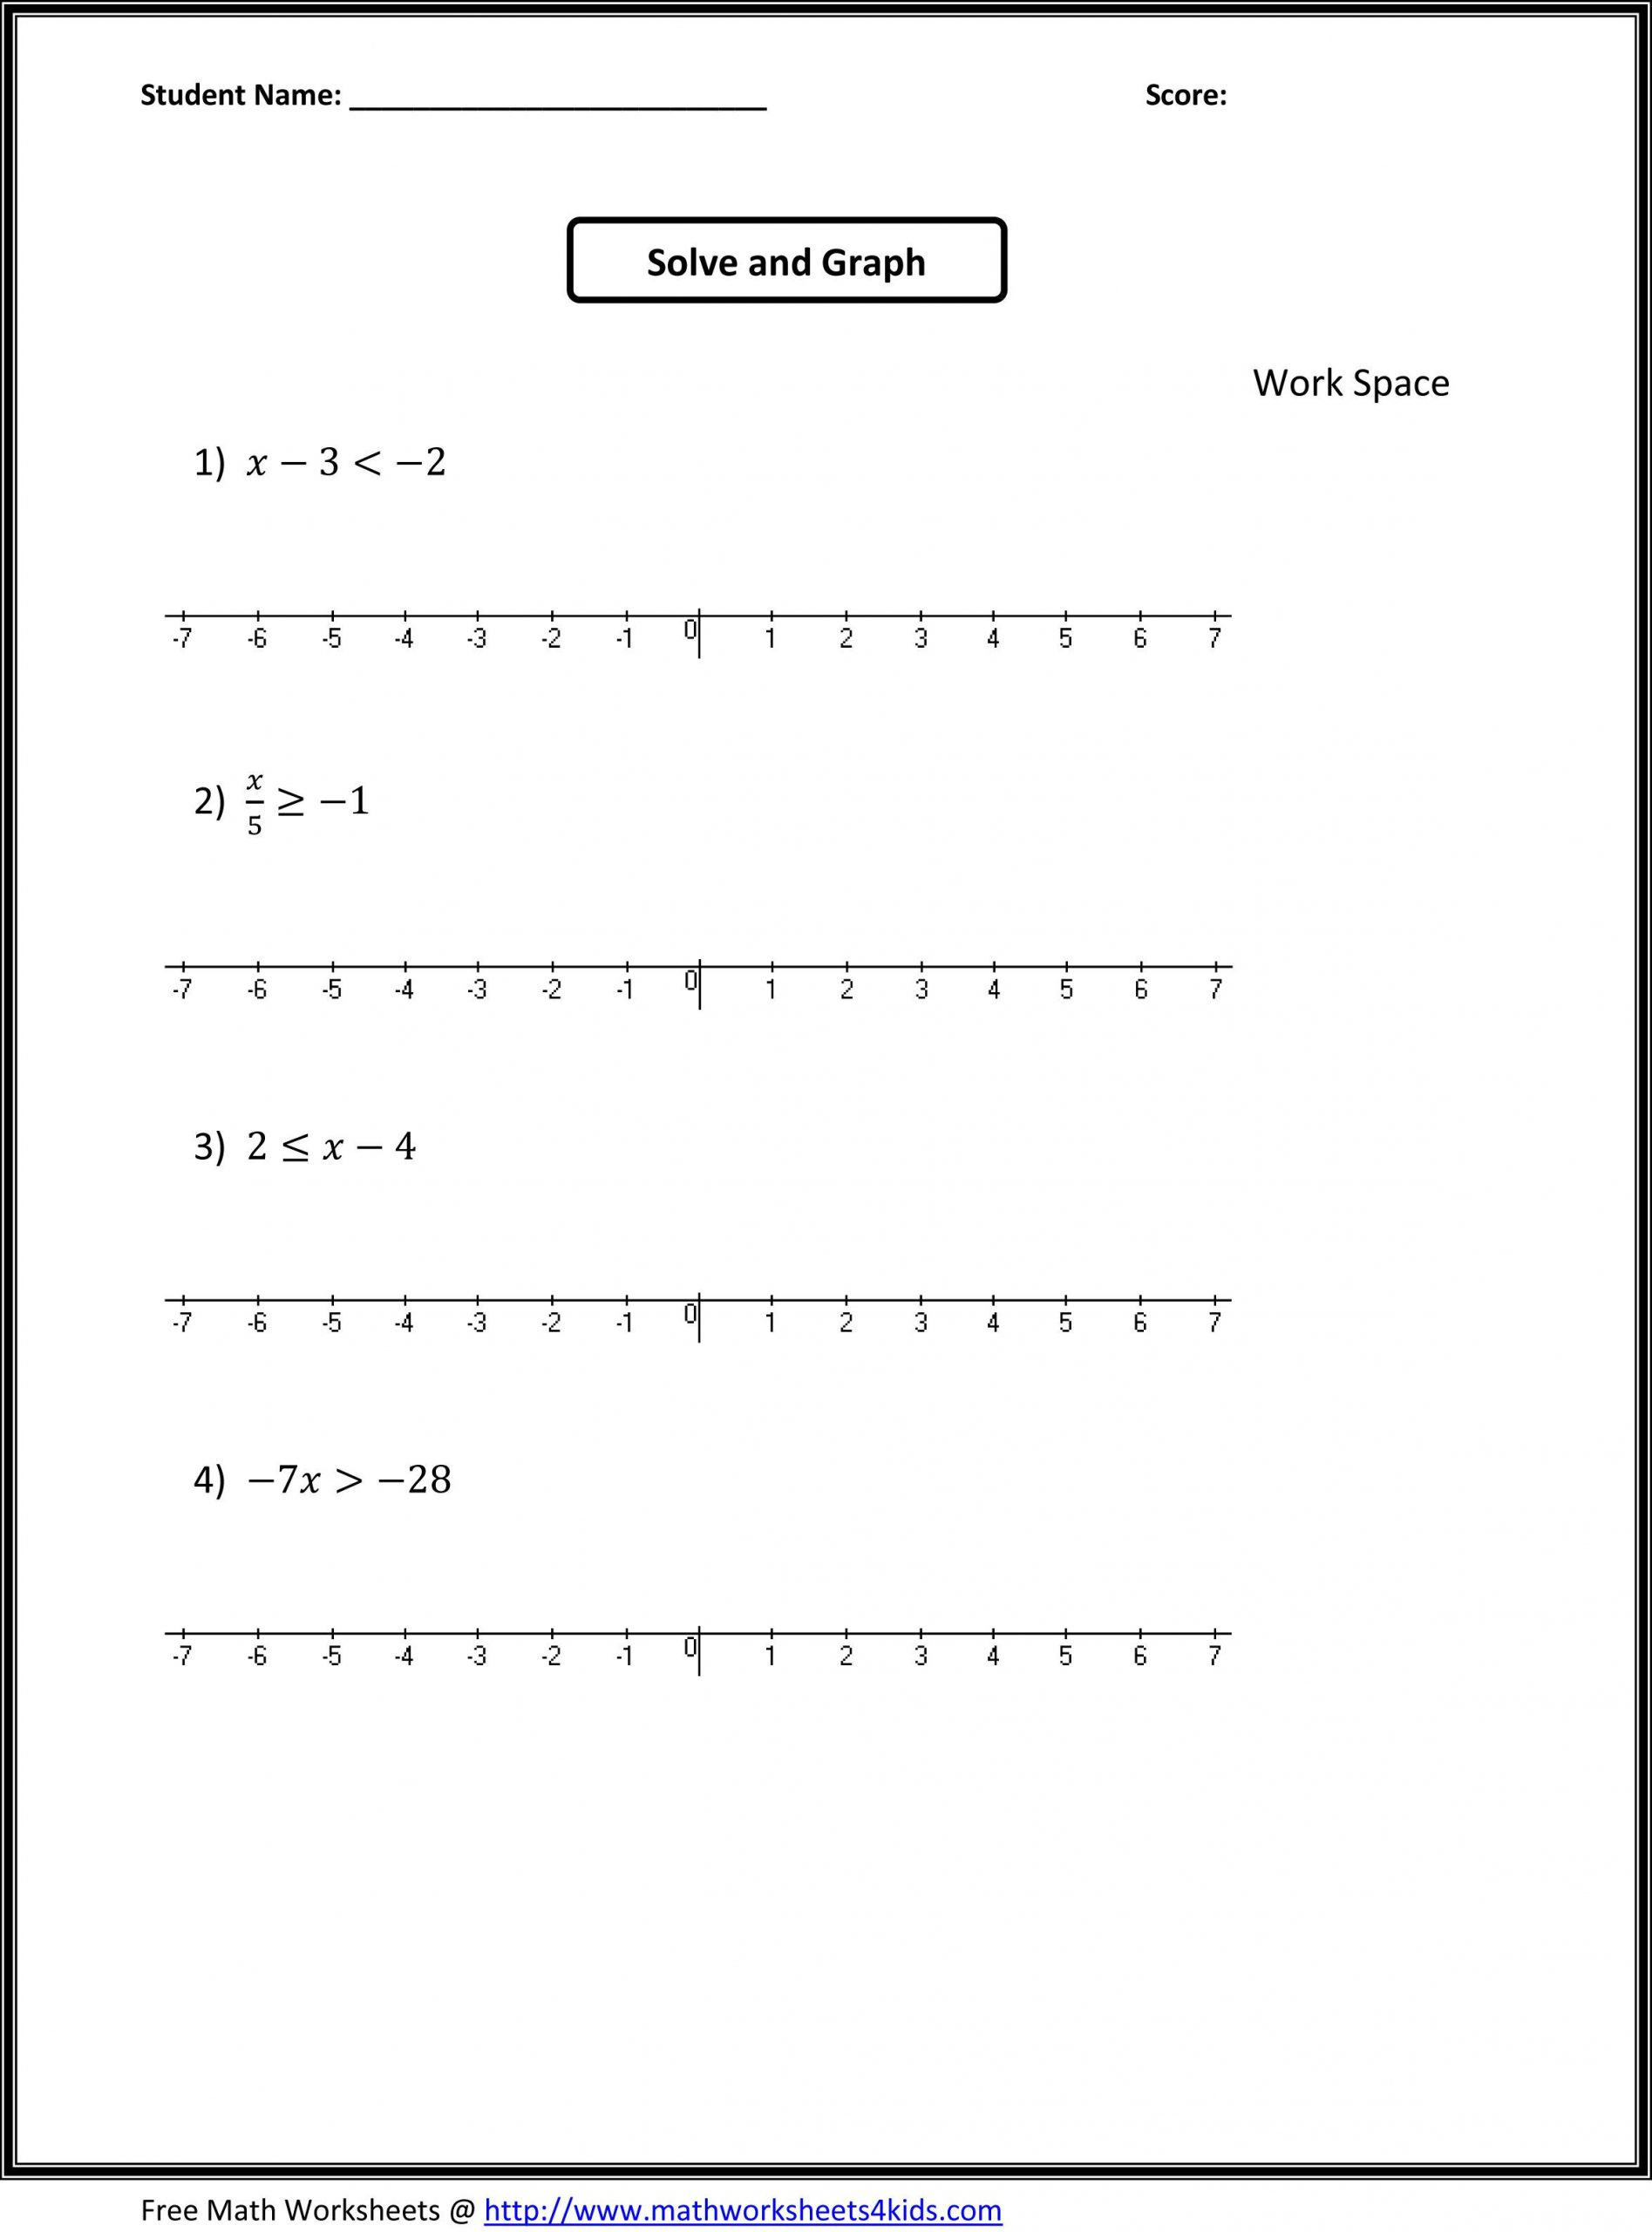 Probability Worksheets 7th Grade Pdf Math Worksheets Grade 7 and 8